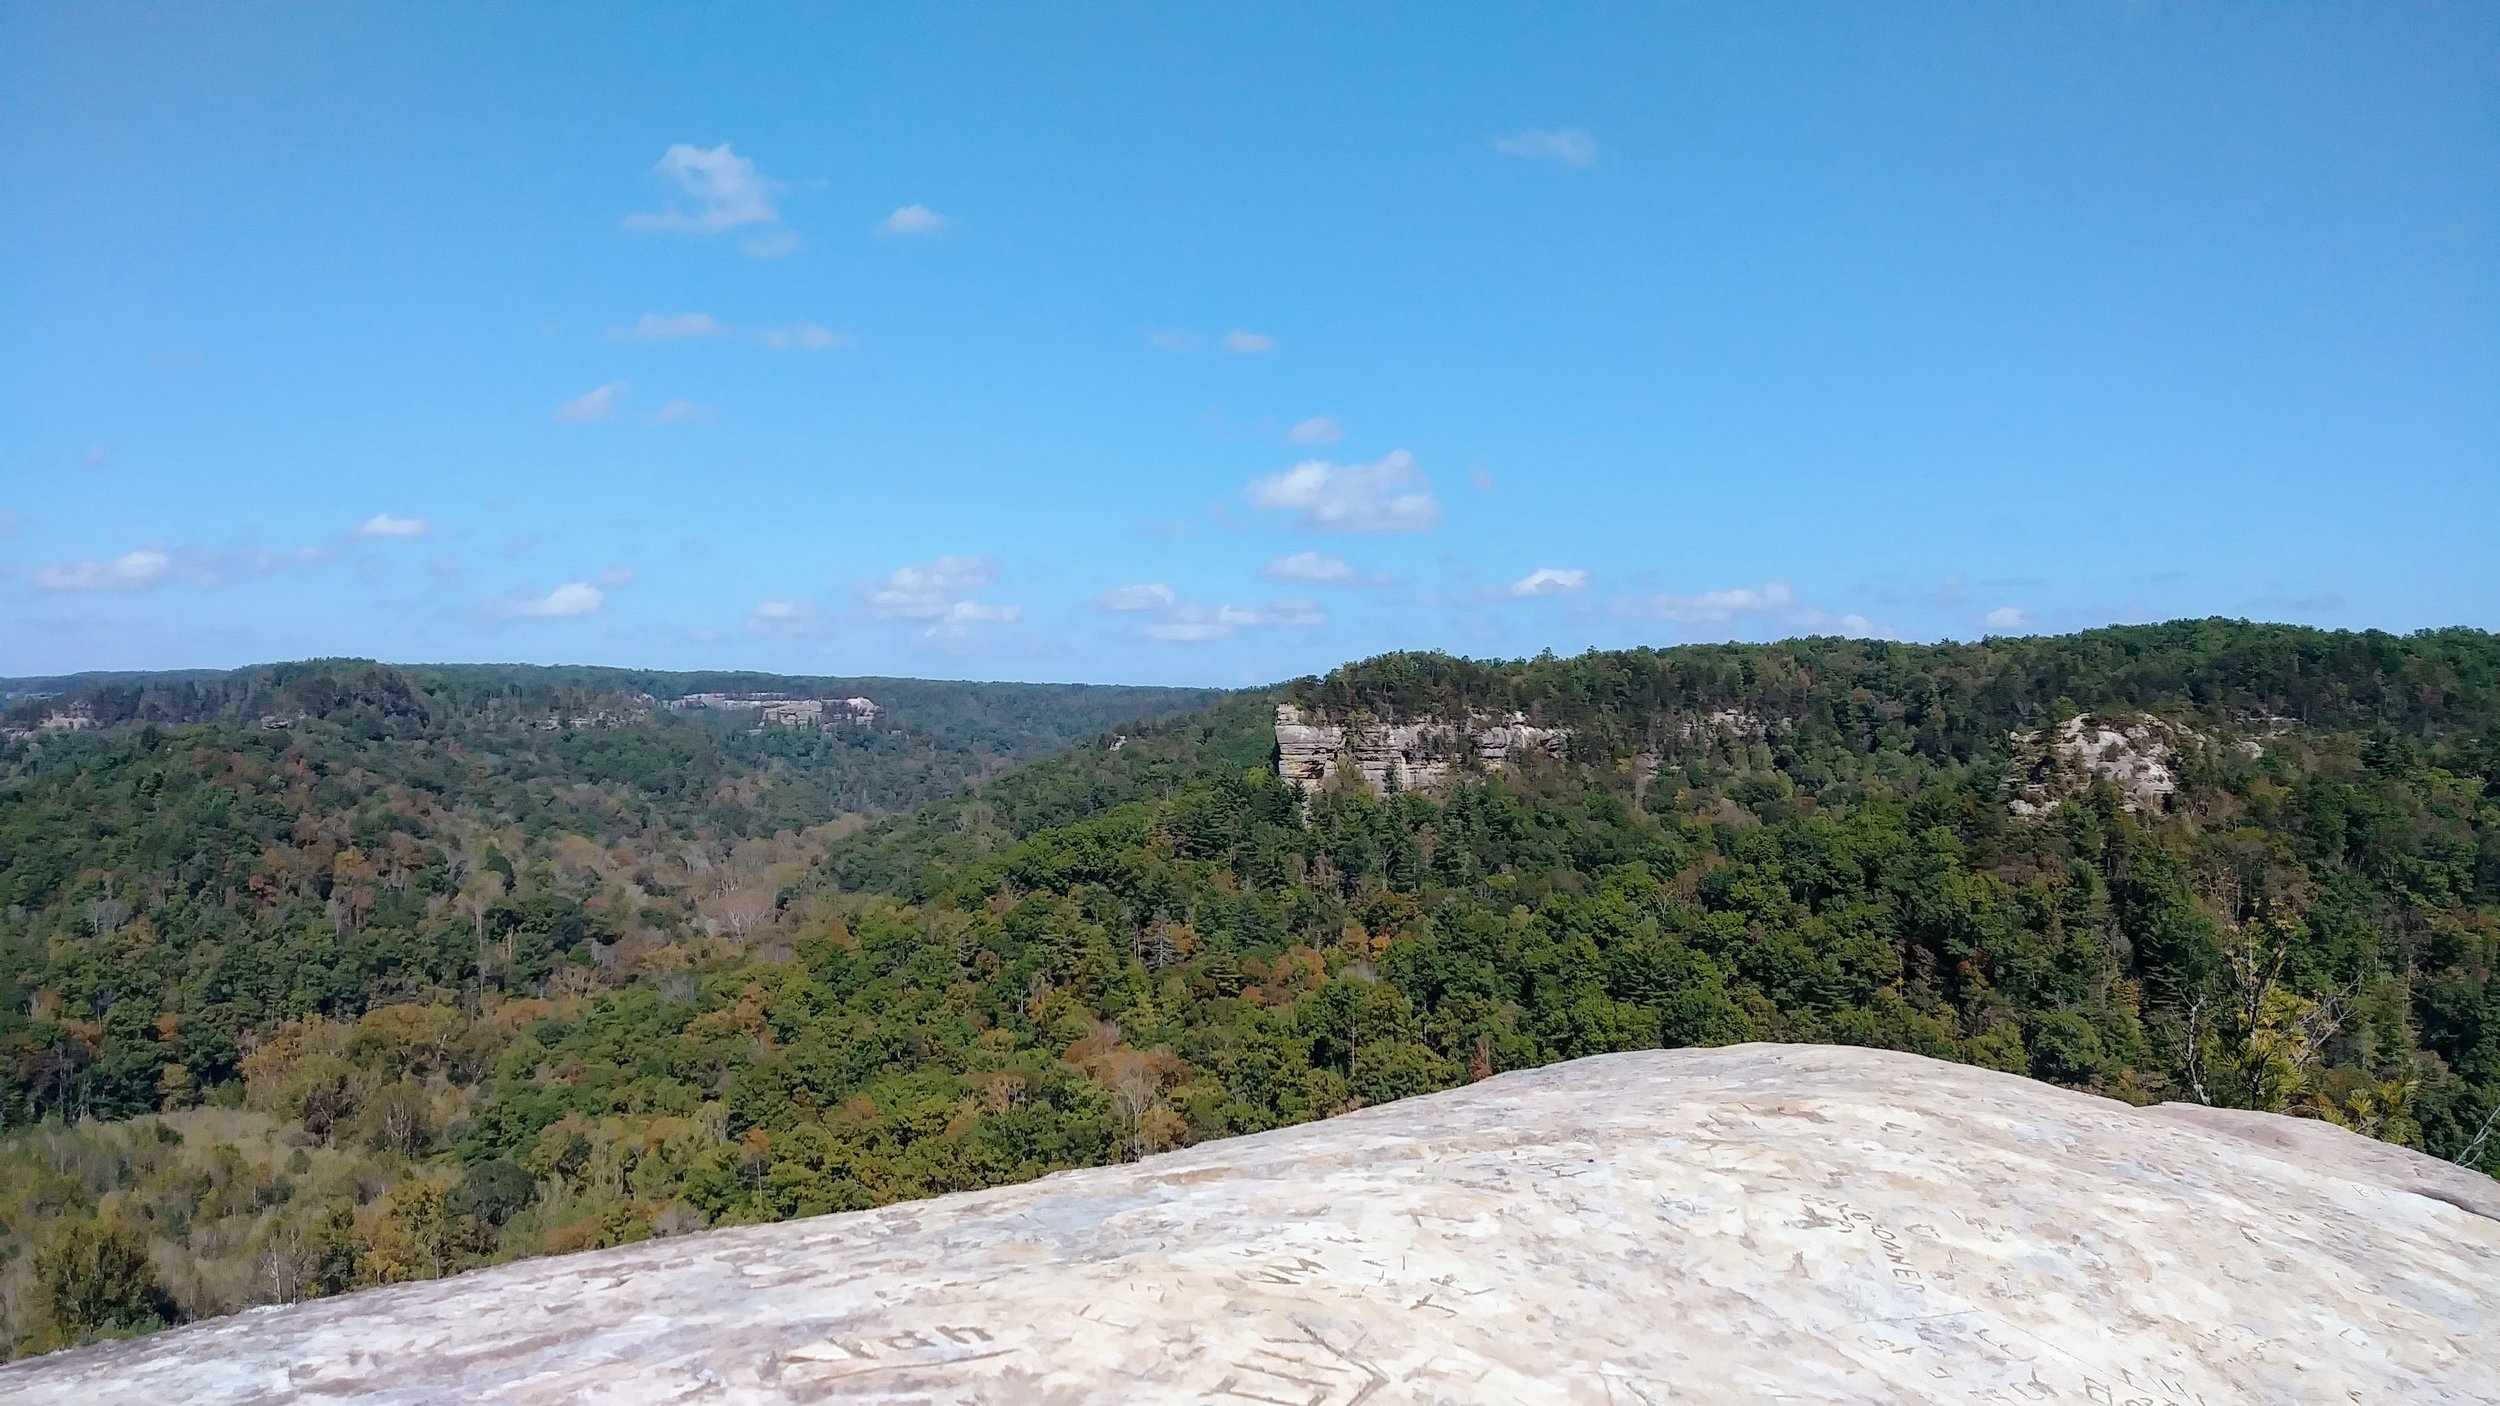 Chimney Rock and Half Moon from Hanson's Point